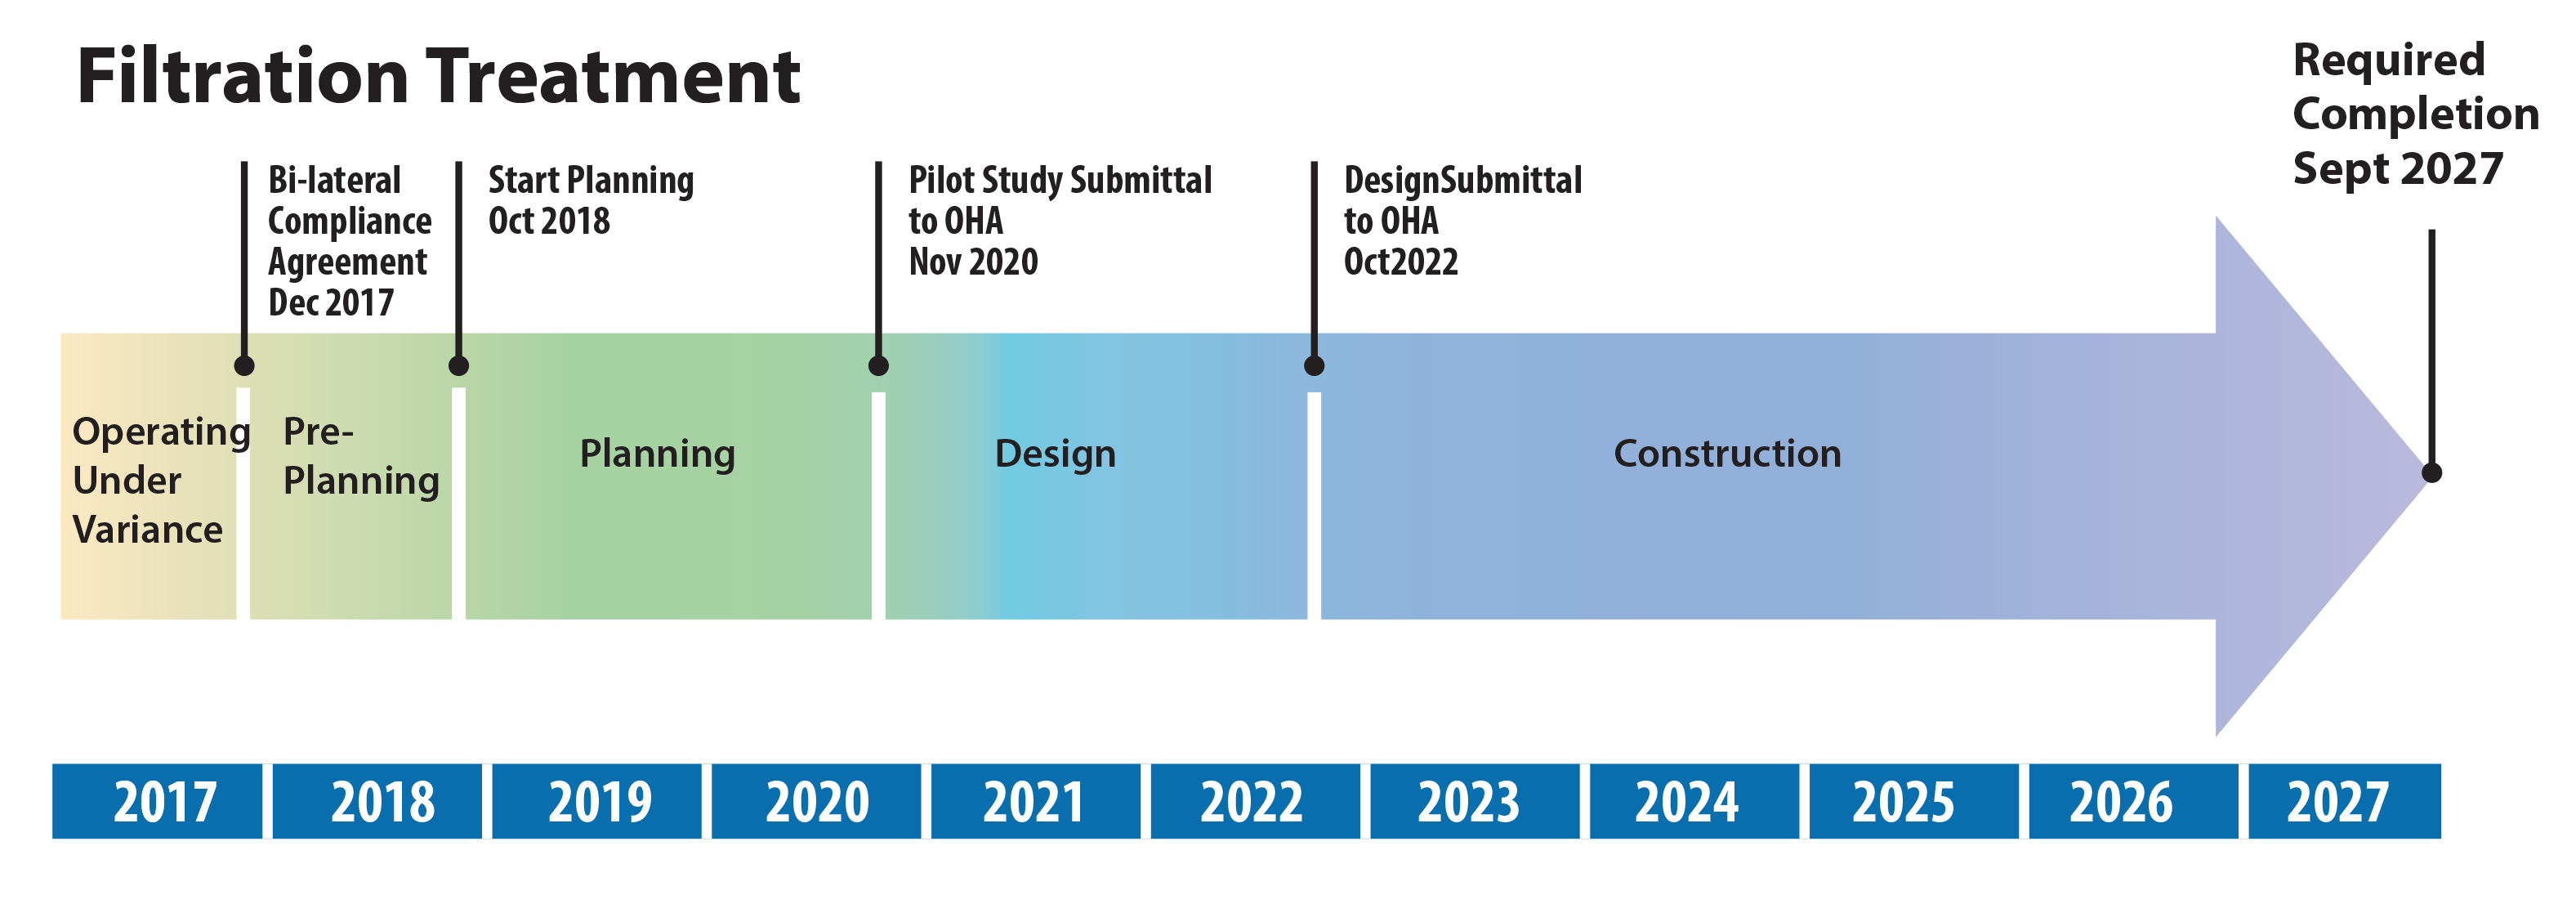 Timeline of filtration project